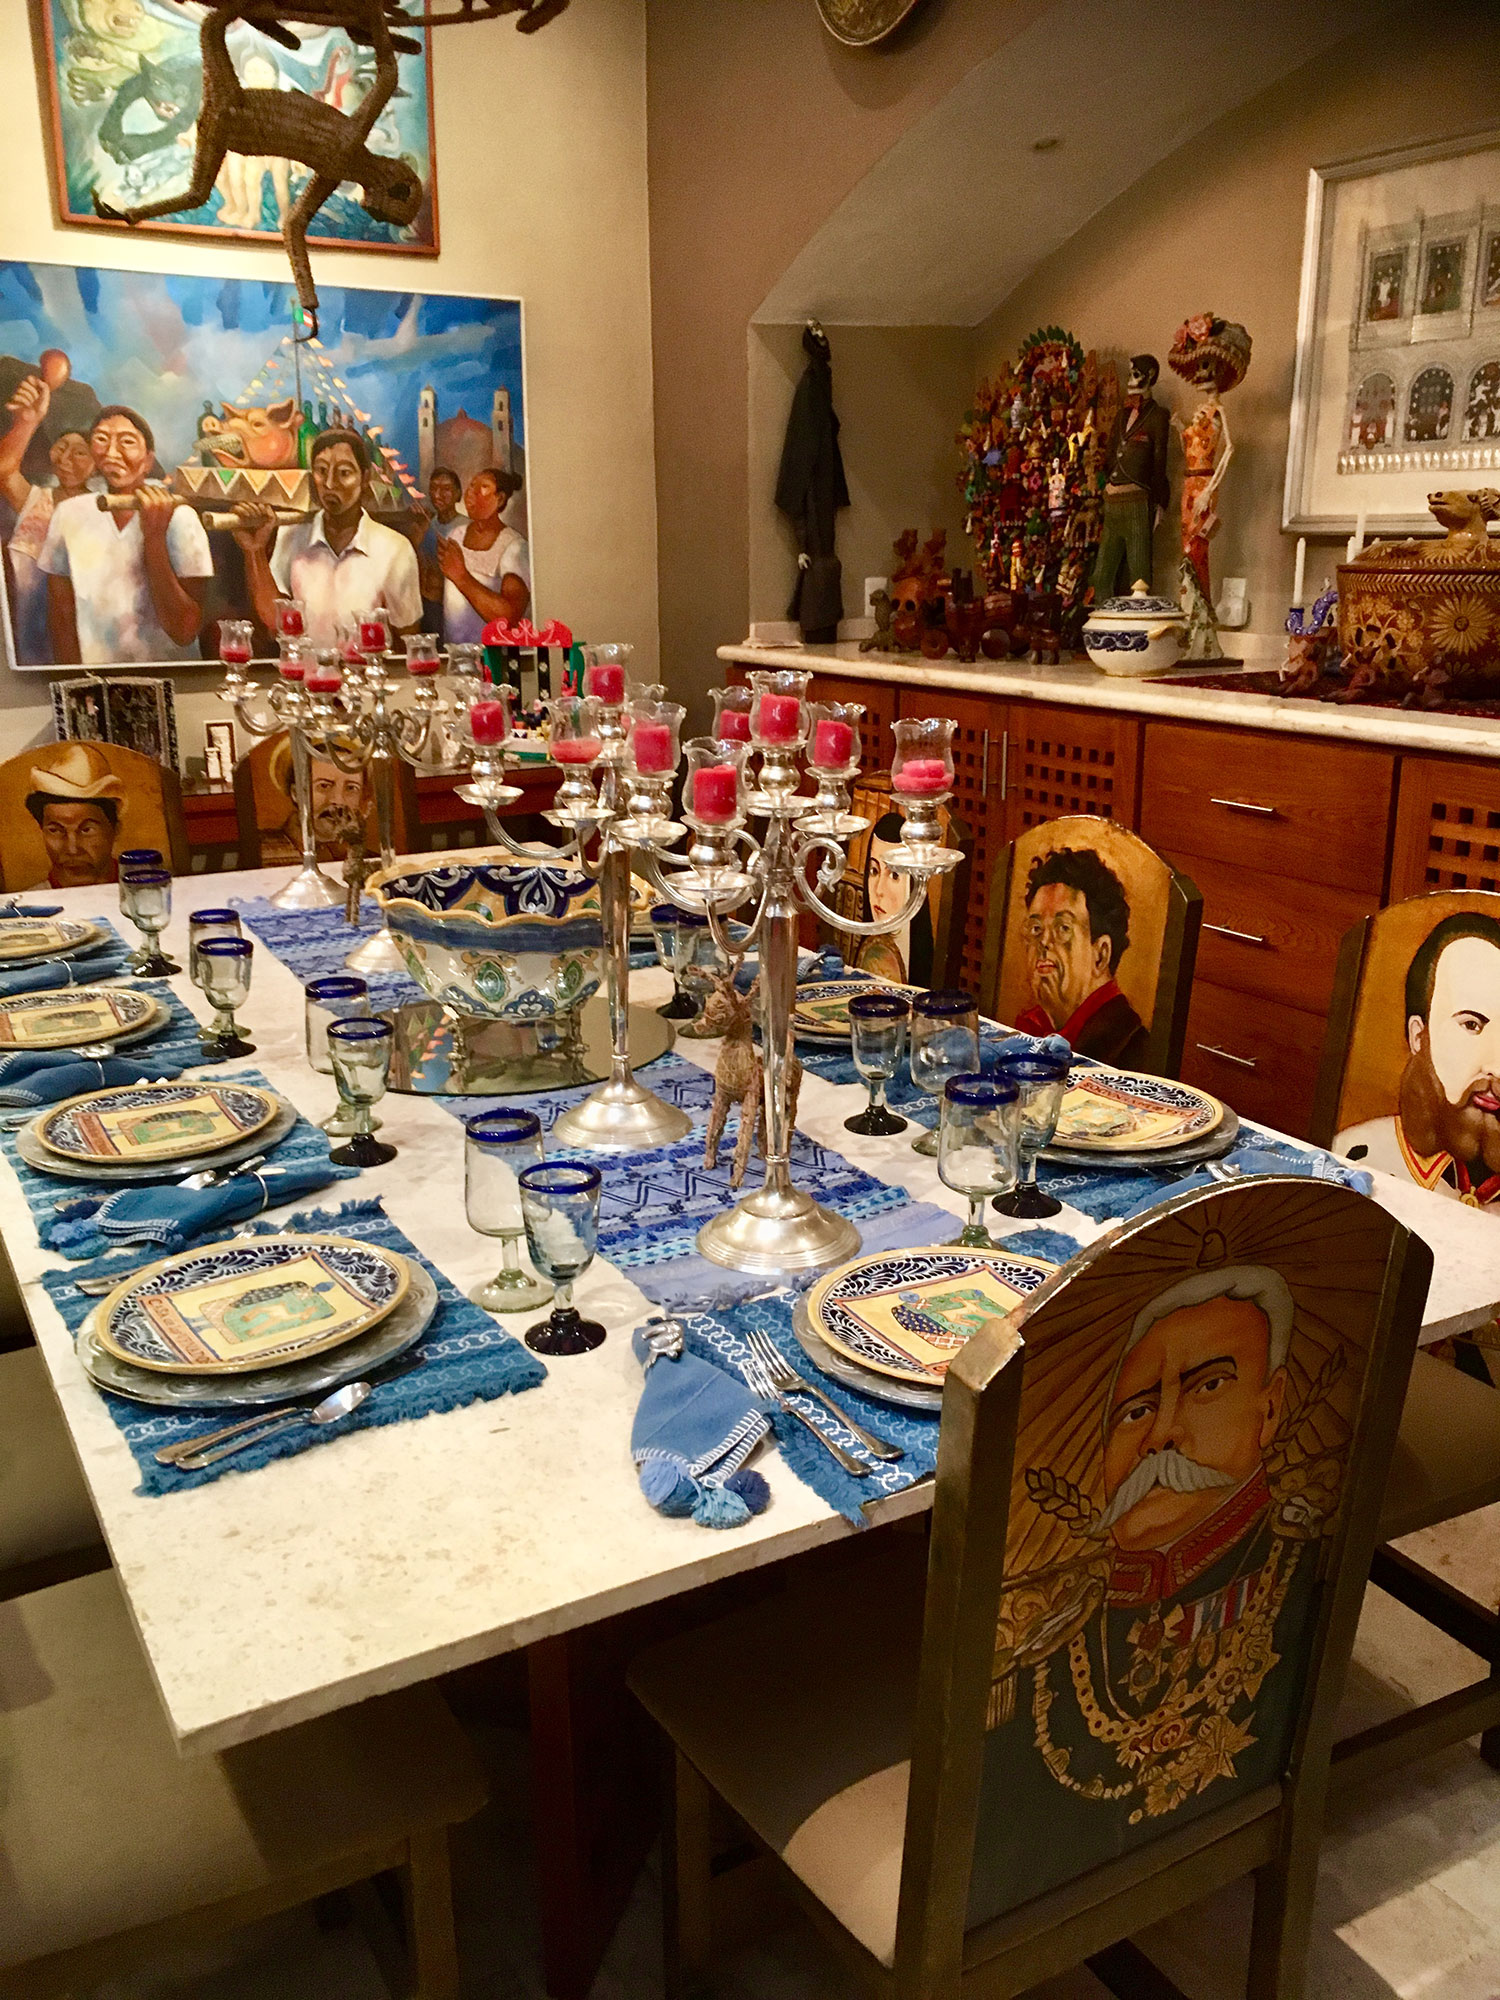 The dining table with the famous personages in the history of Mexico.